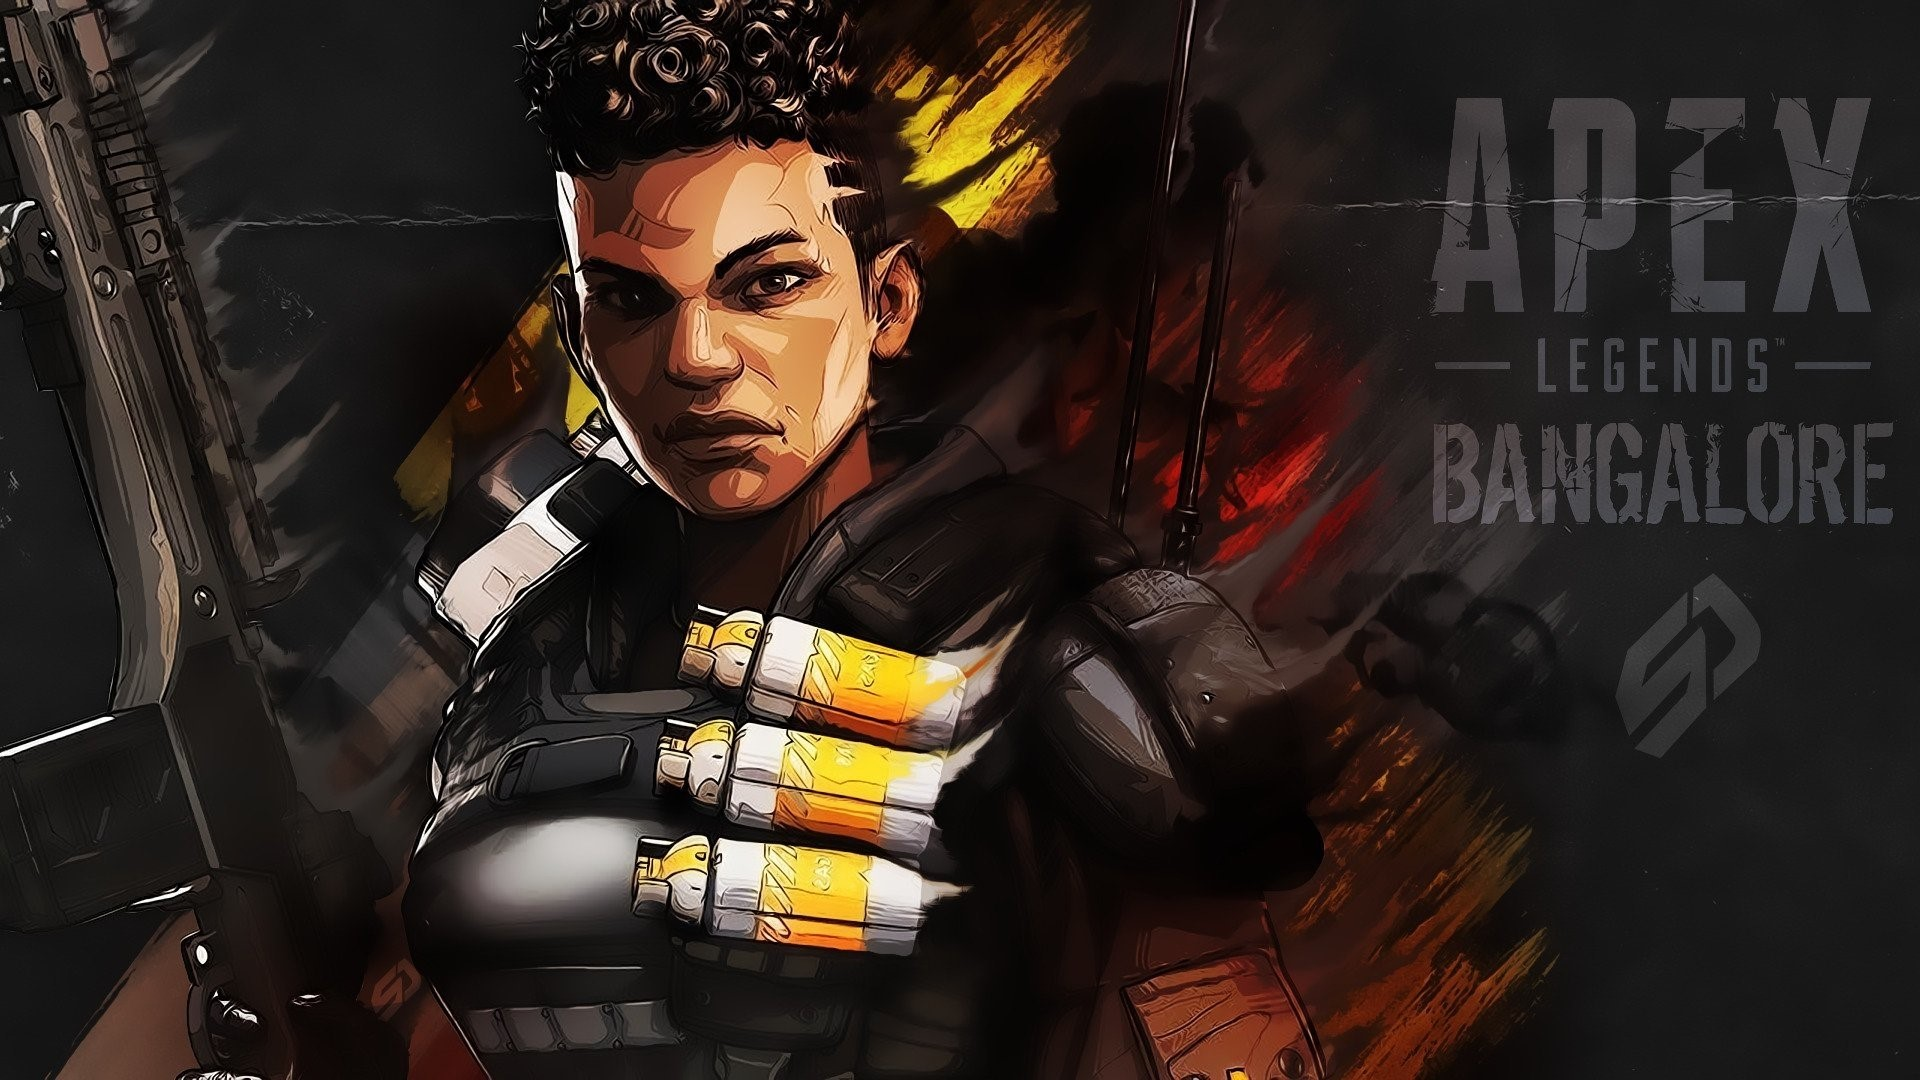 Apex Legend Bangalore